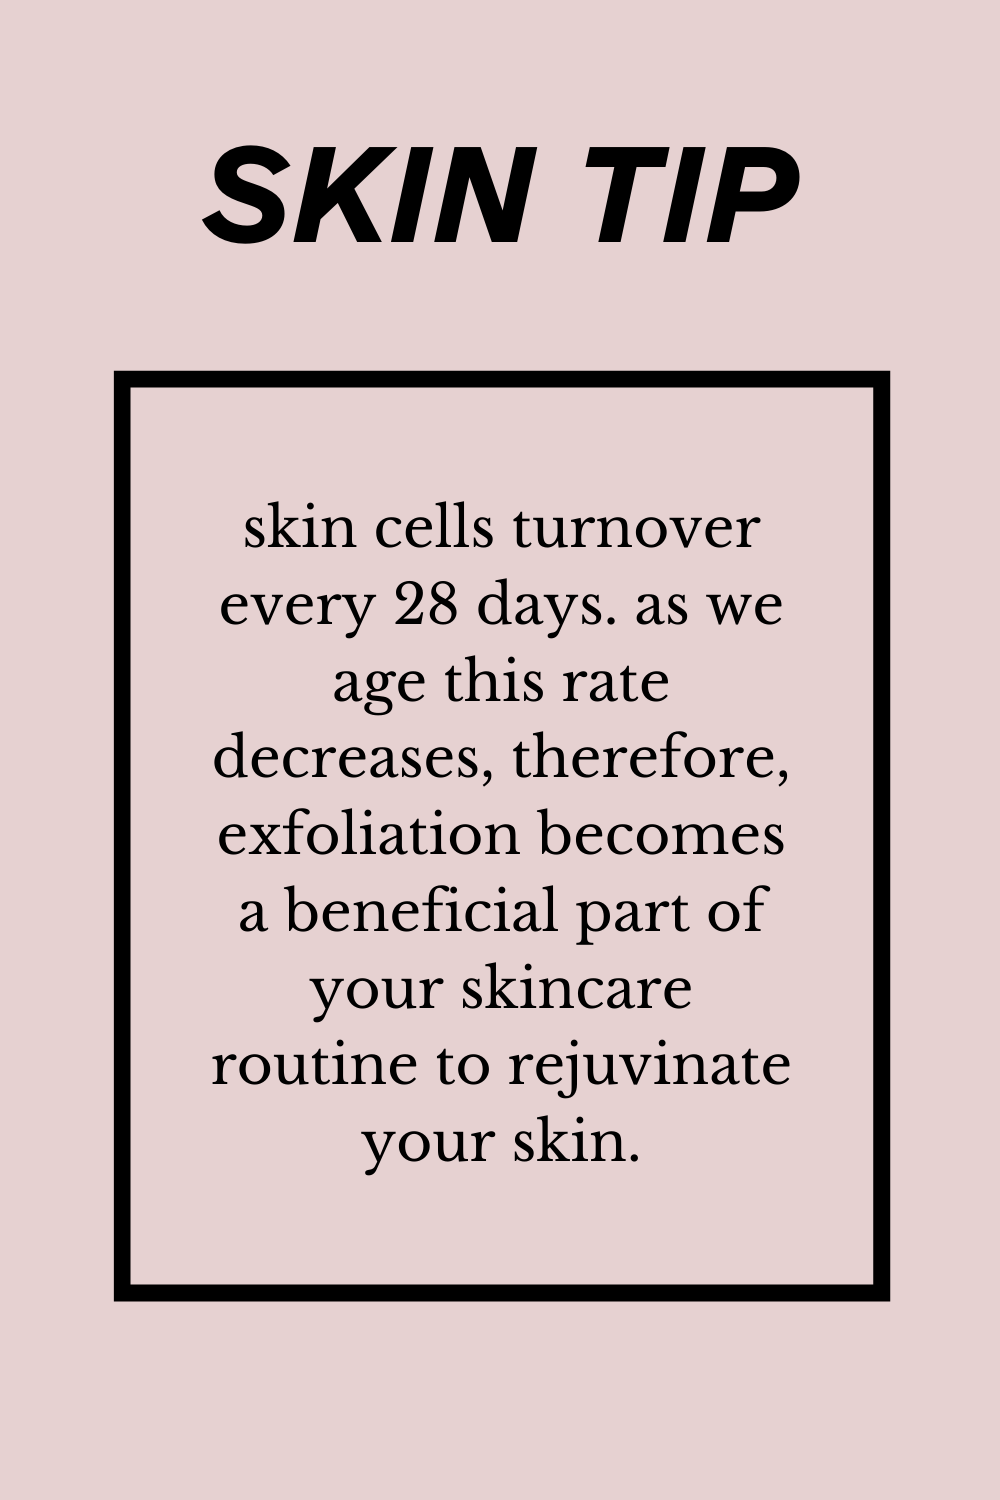 Tips for clear skin!